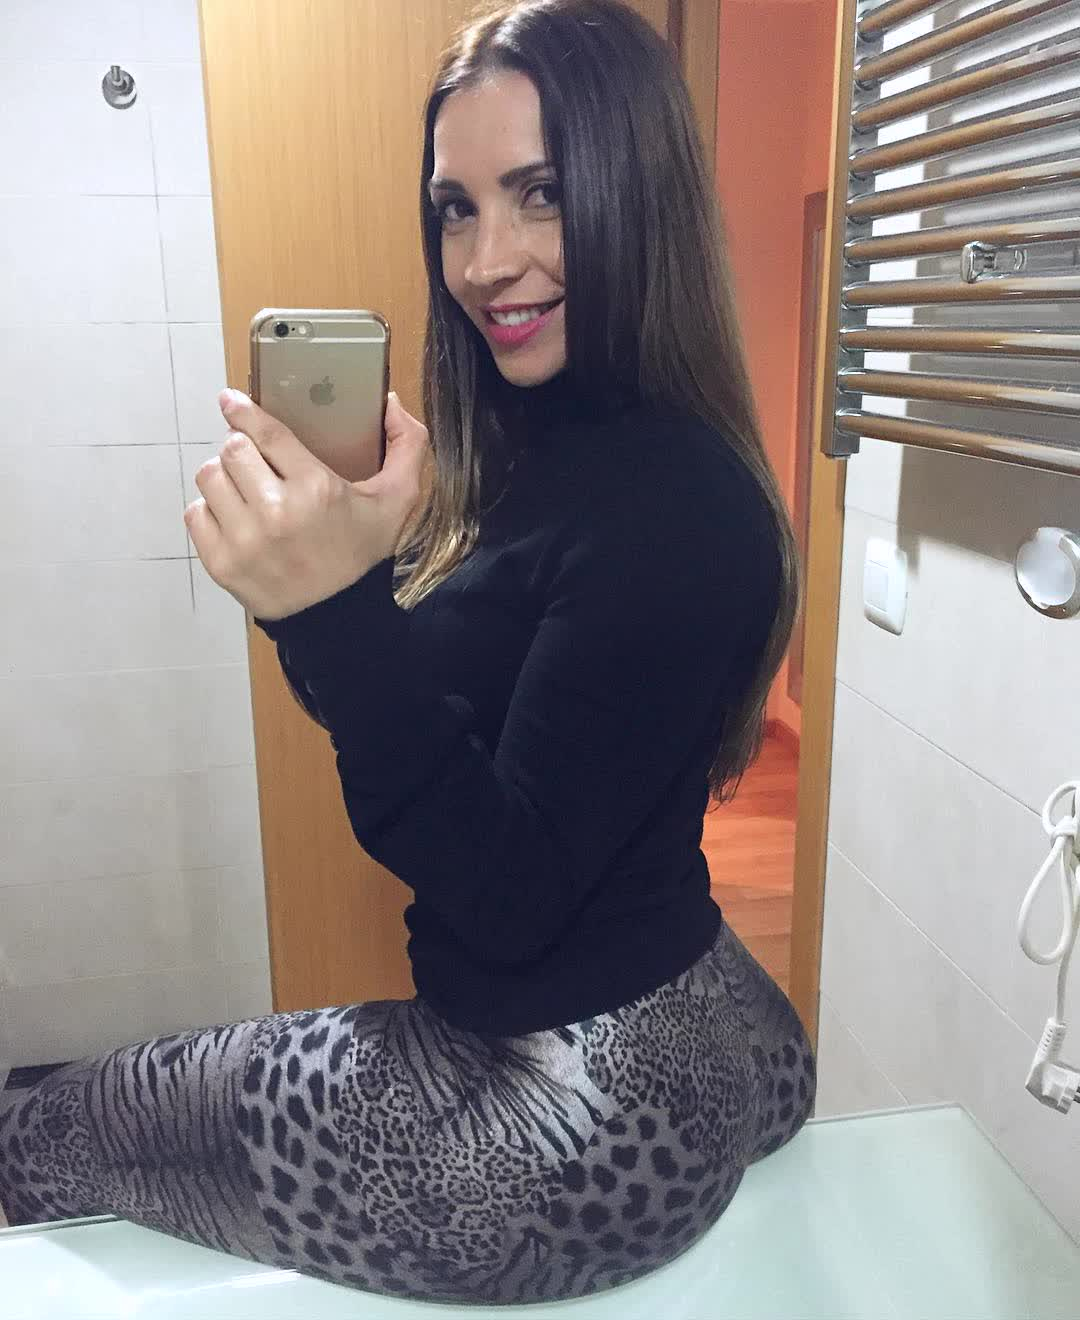 booty milf photos repost neivamara and picture horny ass